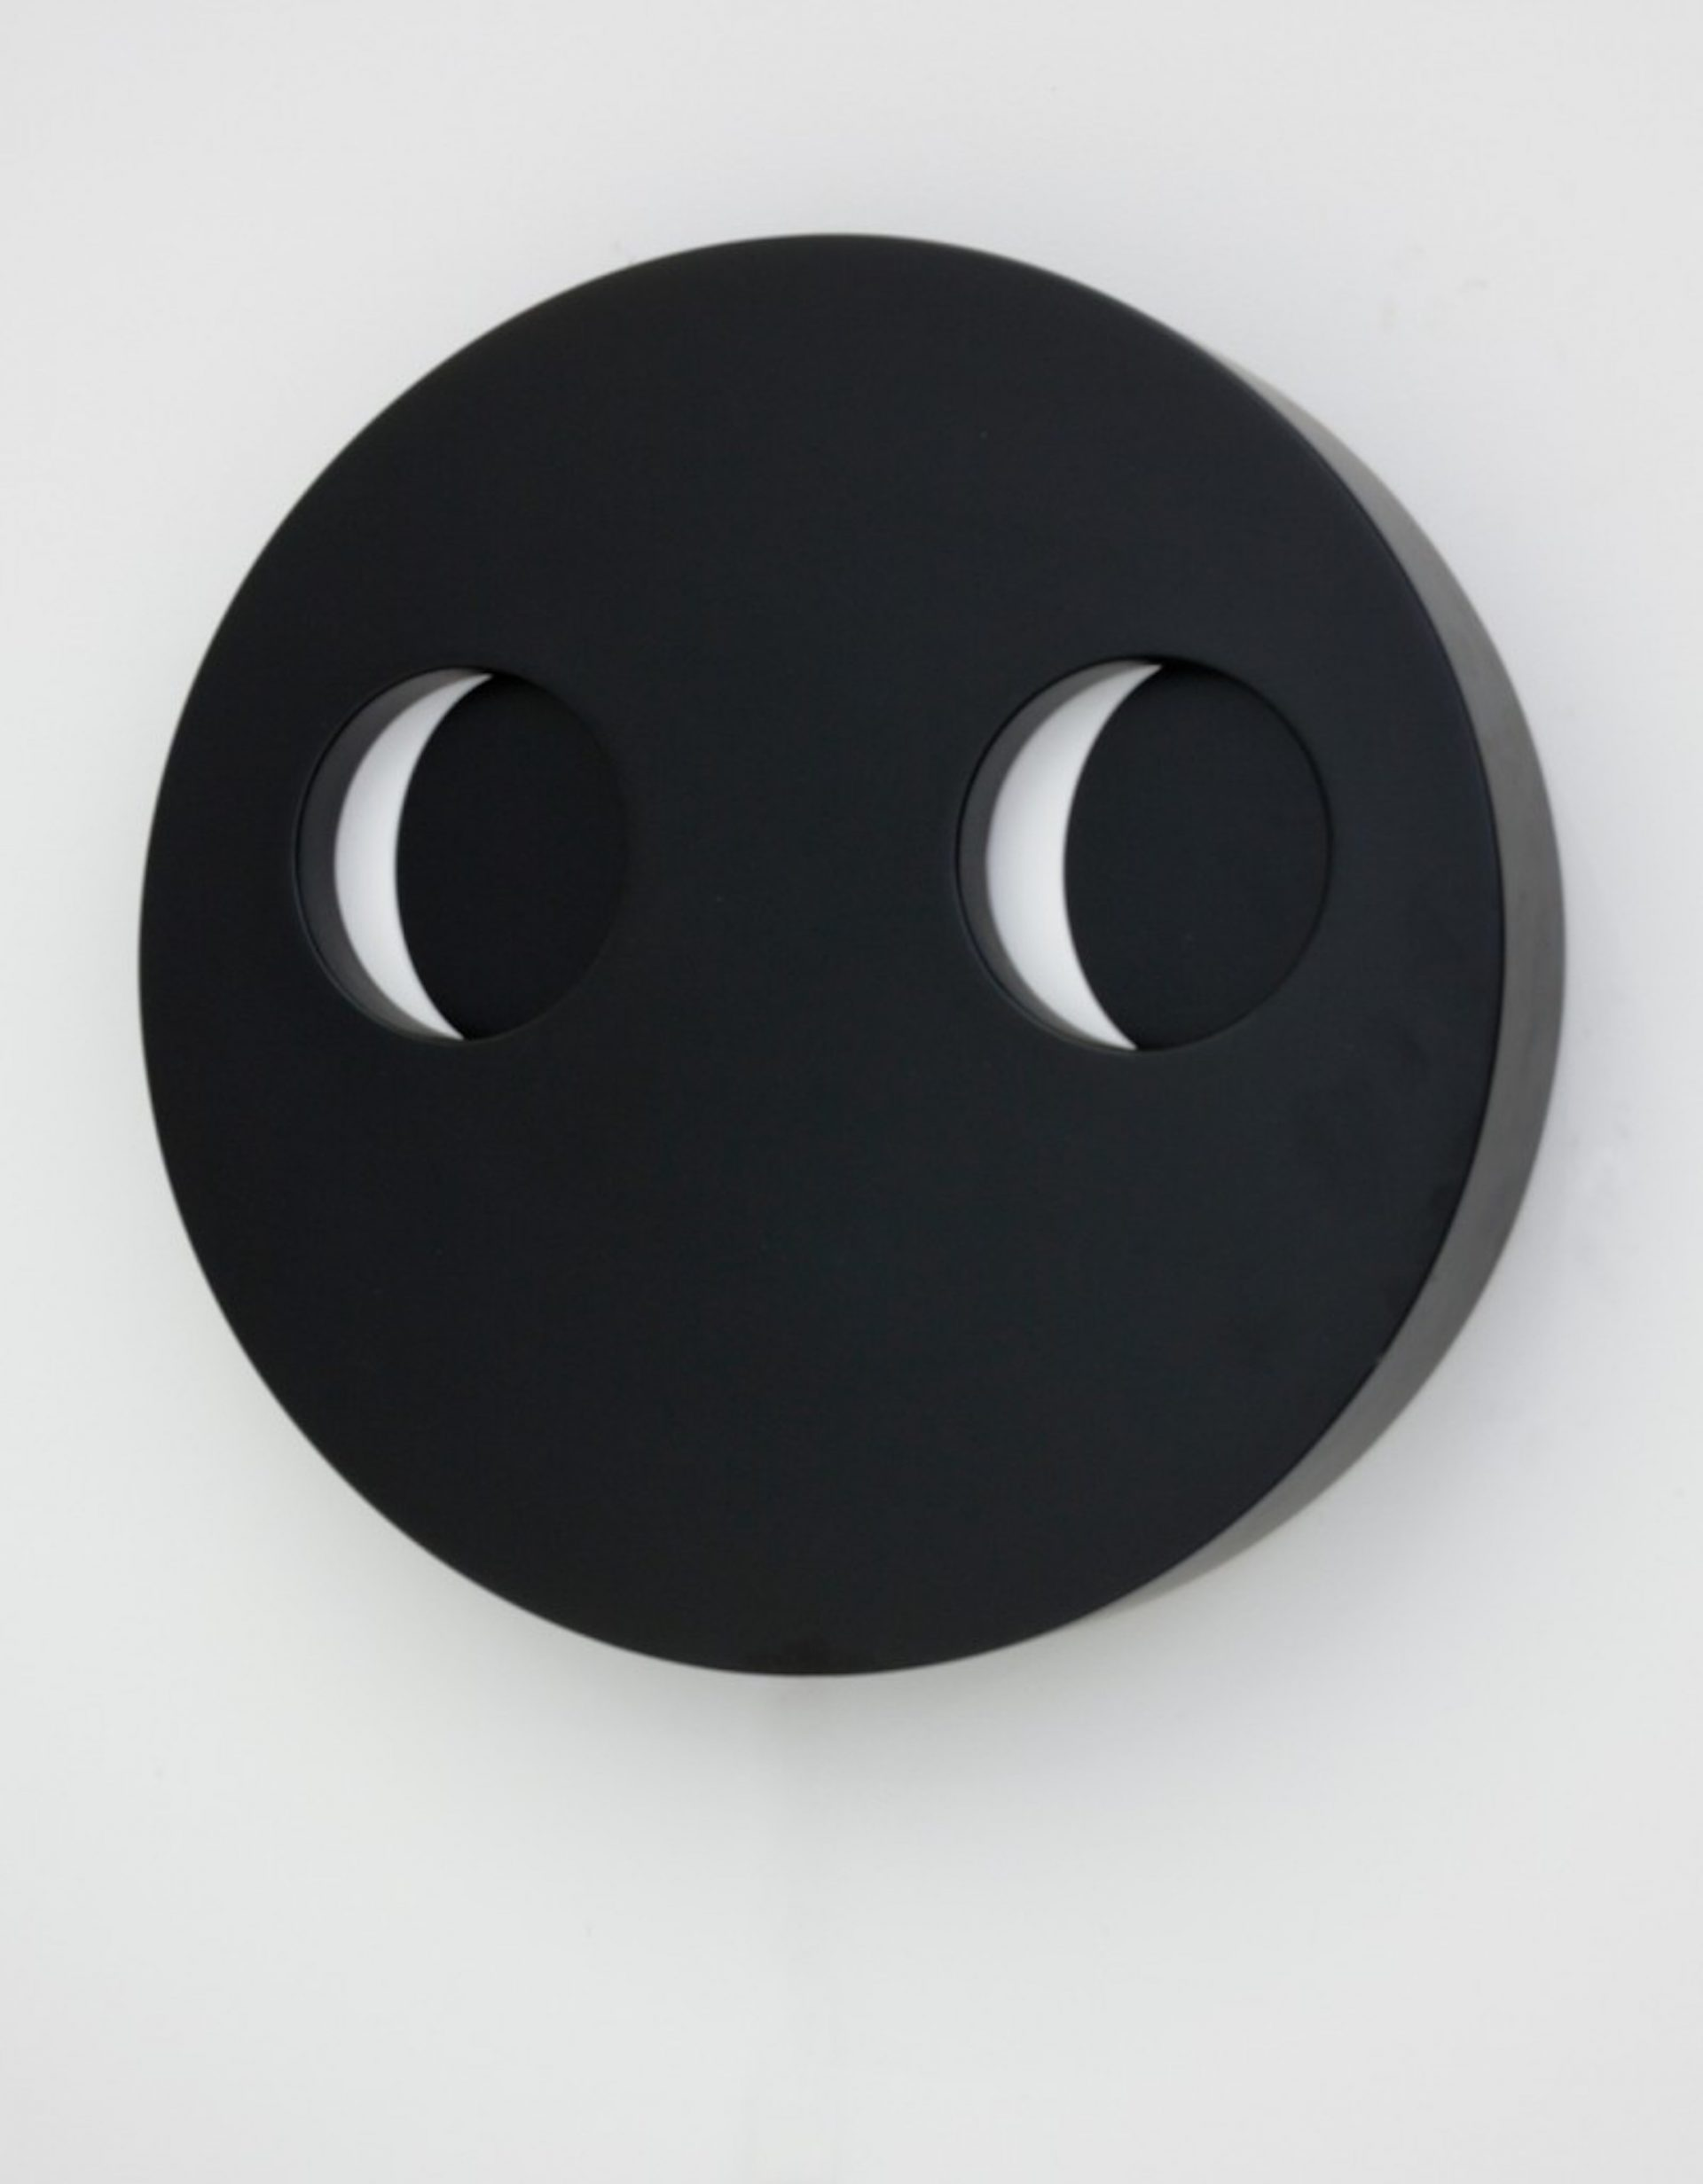 I See You - Lasercut MDF, car paint, acrylic, mechanical parts , 18 inches diameter 2011